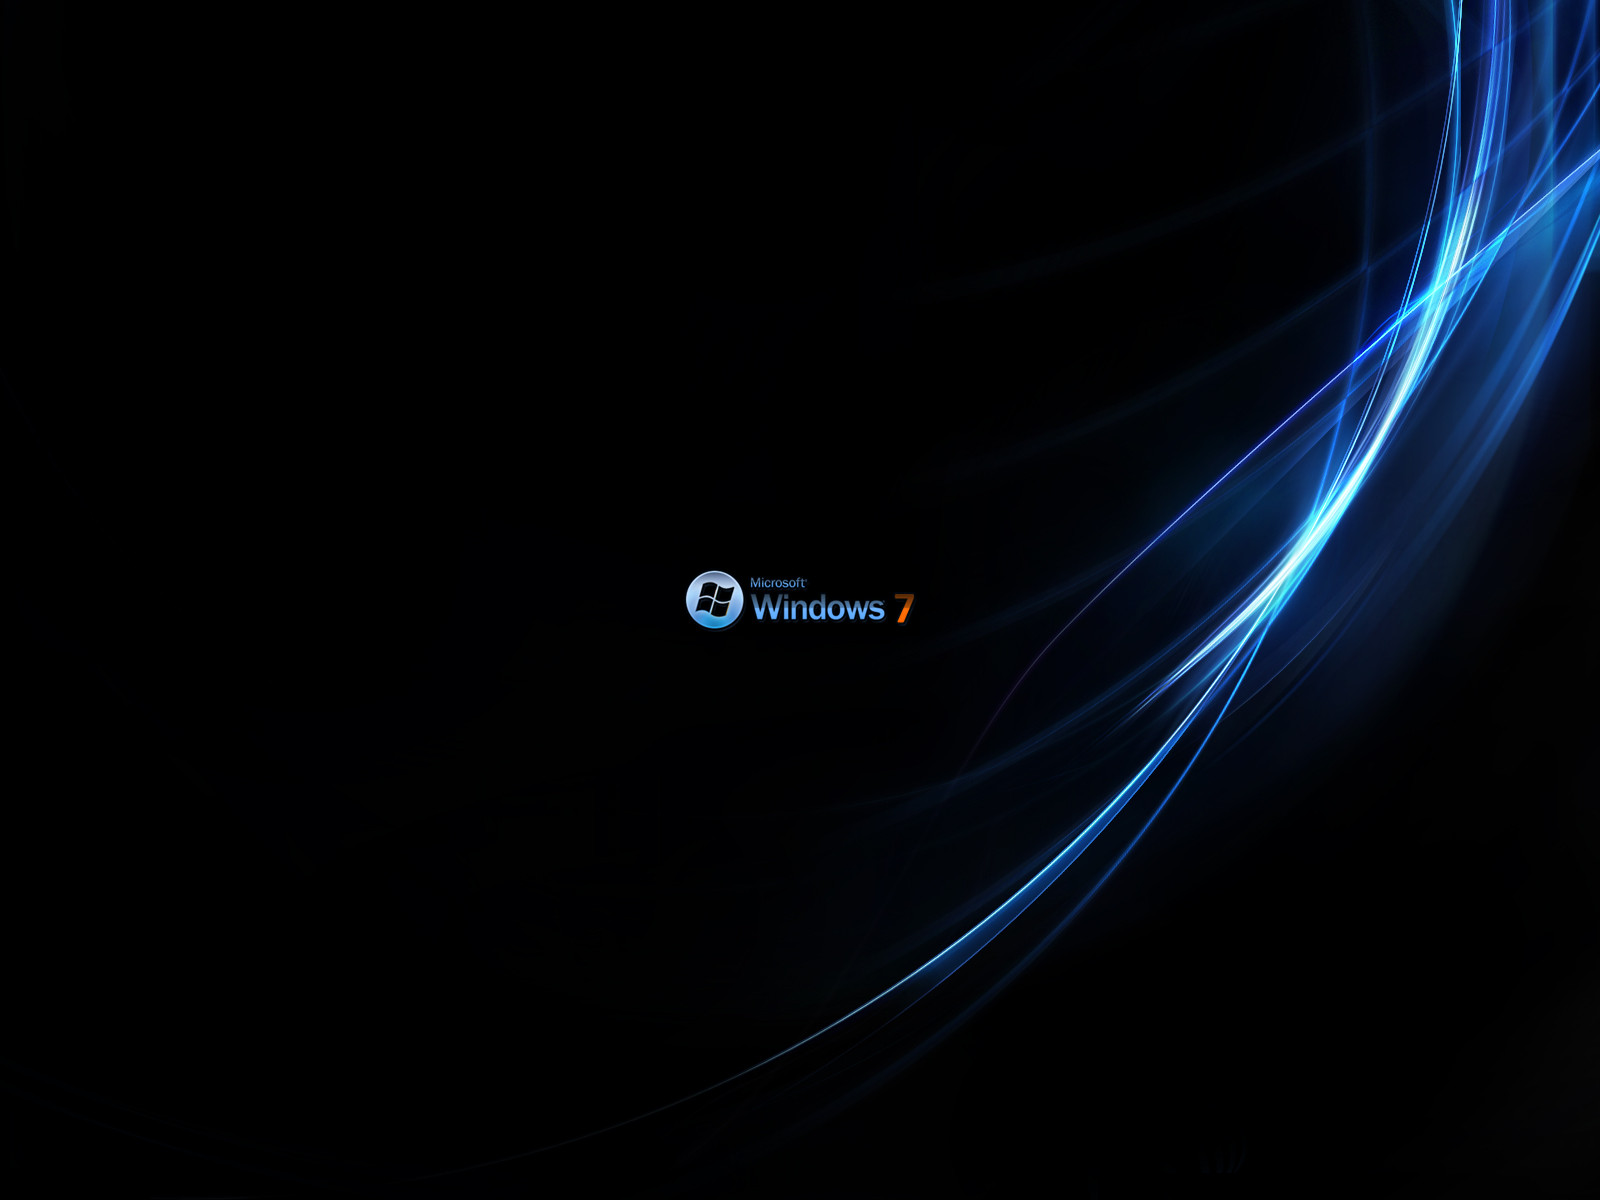 Windows 7 blue dark wallpapers 3 wallpapers hd wallpapers windows 7 blue dark wallpapers 3 wallpapers voltagebd Image collections